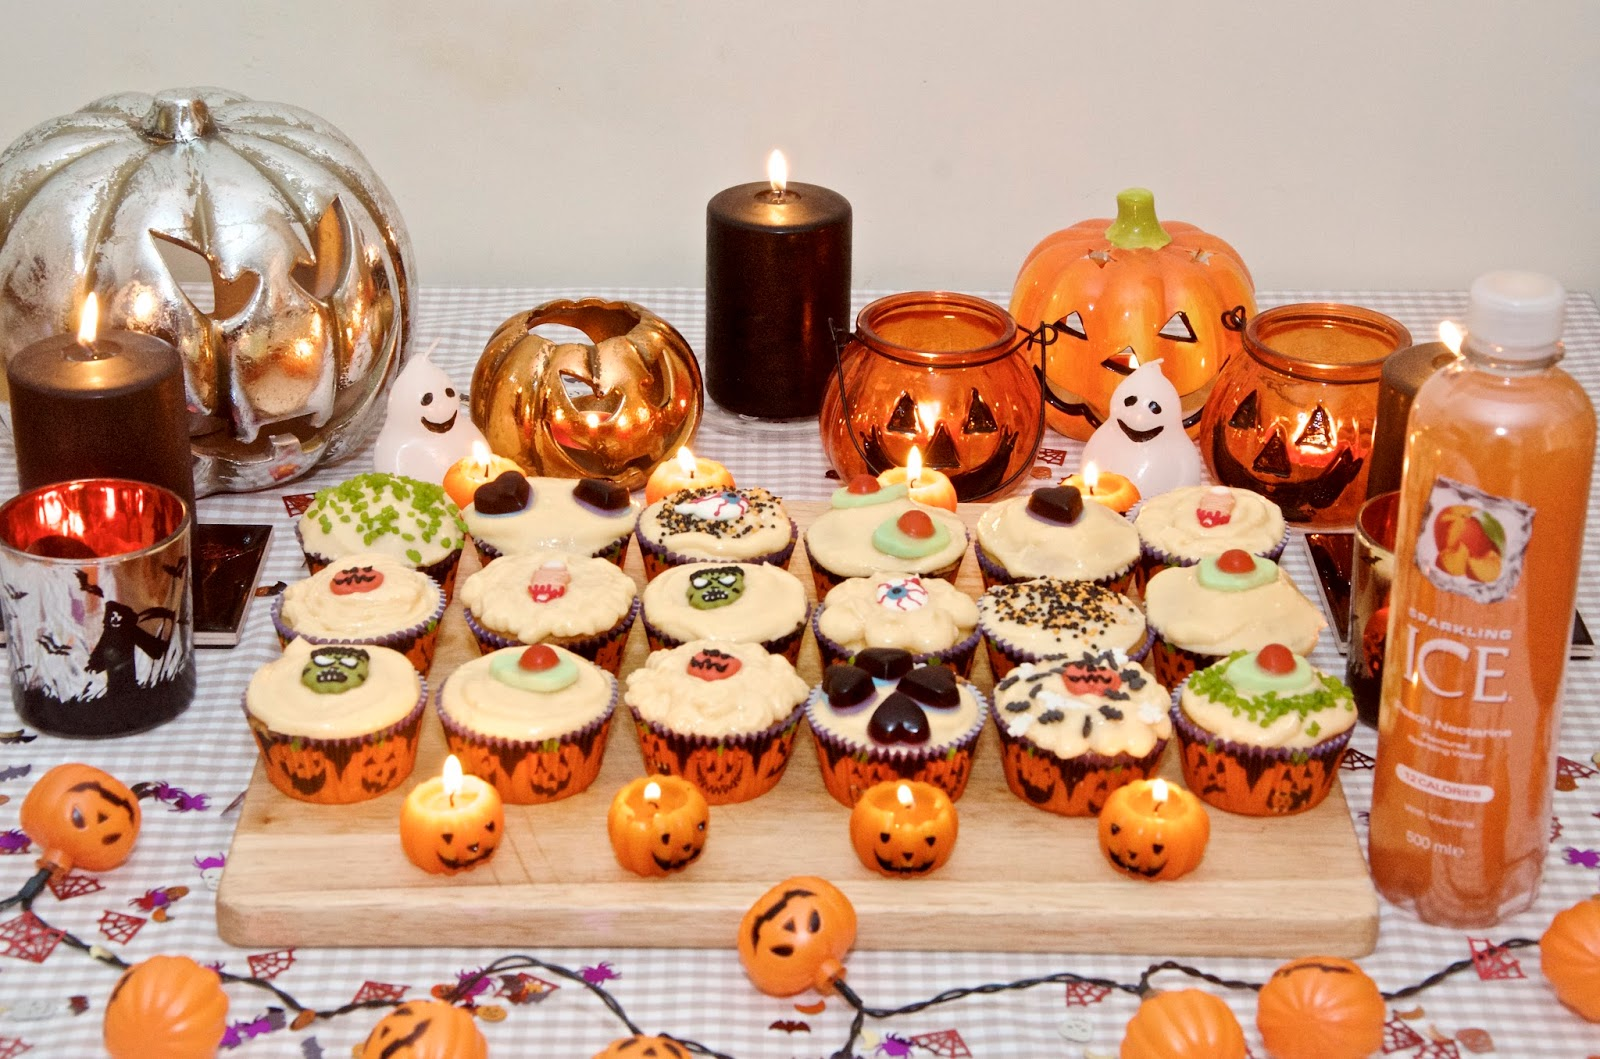 Pumpkins, candles, cupcakes, halloween decorations and Sparkling ICE Peach Nectarine